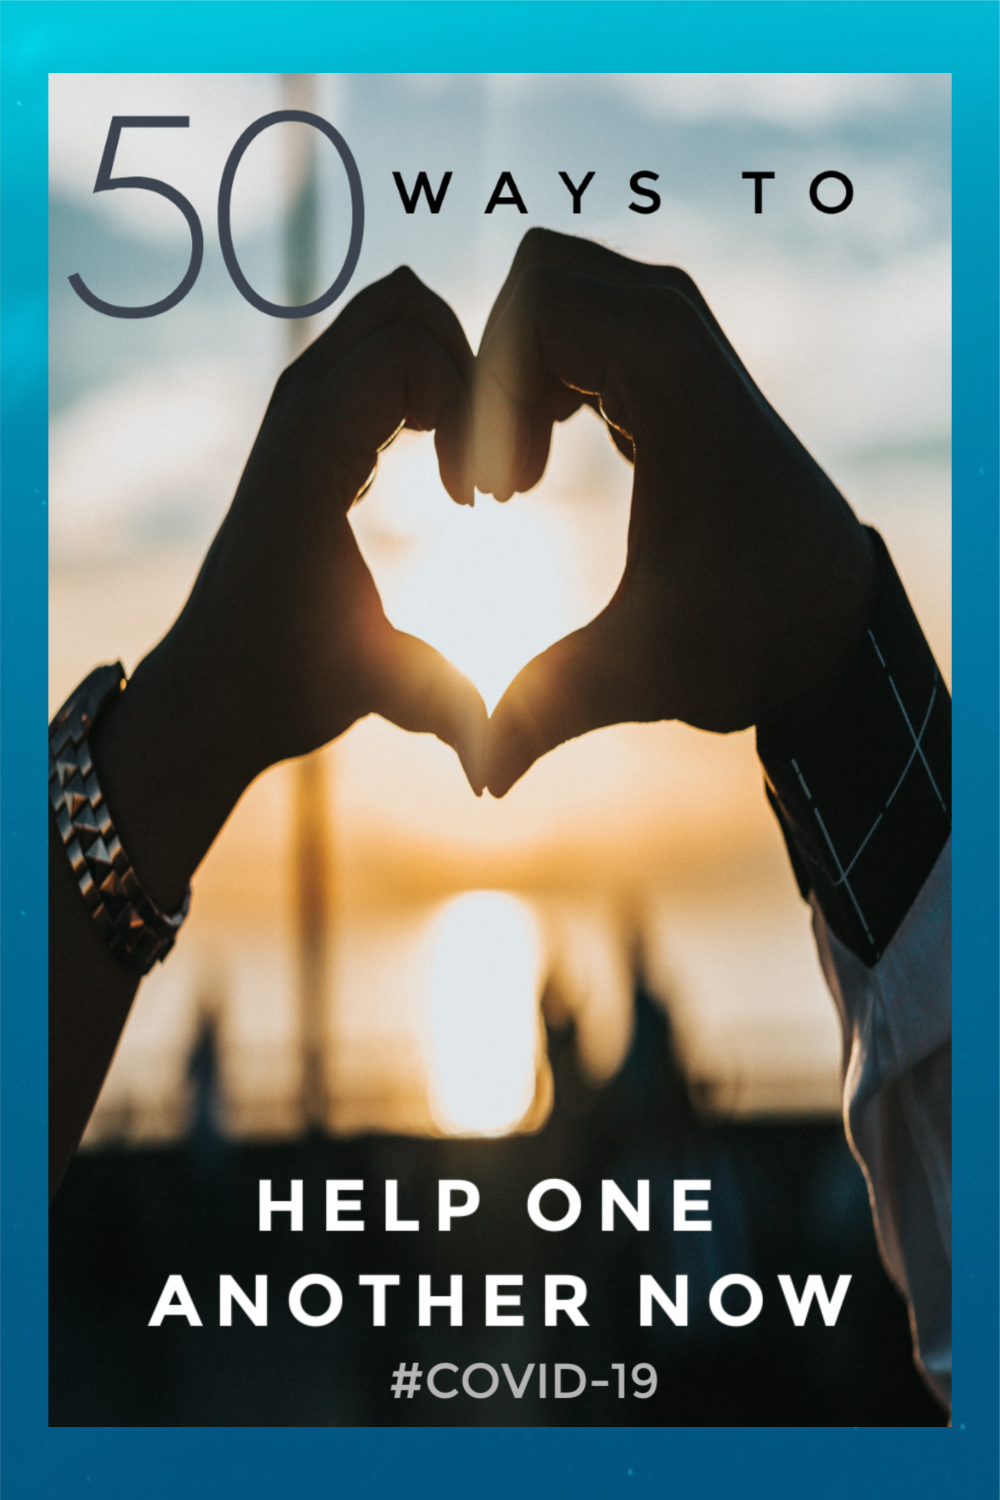 Are you feeling anxious? Do you know a great way to combat that anxiety is by helping others? Here are 50 Ways to Help One Another Now in dealing with the current pandemic of the Carnivorous. Find ways to help the elderly, families, students, needy, hospitals, and more. Find these solutions on salvagesisterandmister.com #salvagemoments and love one another (love in action)